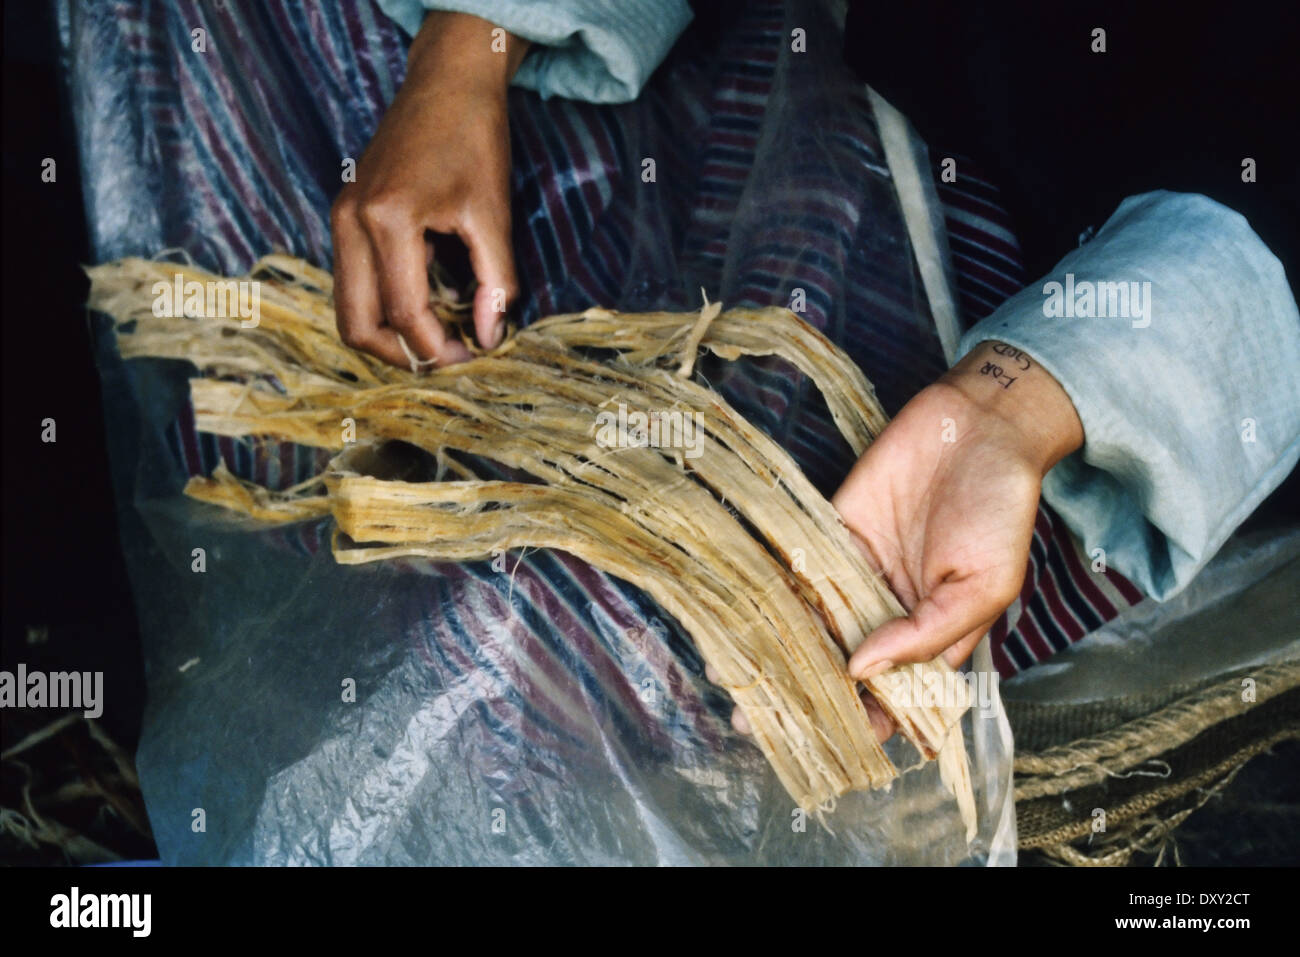 Worker splitting reeds for hand-made paper at a factory in Thimpu, Bhutan. - Stock Image